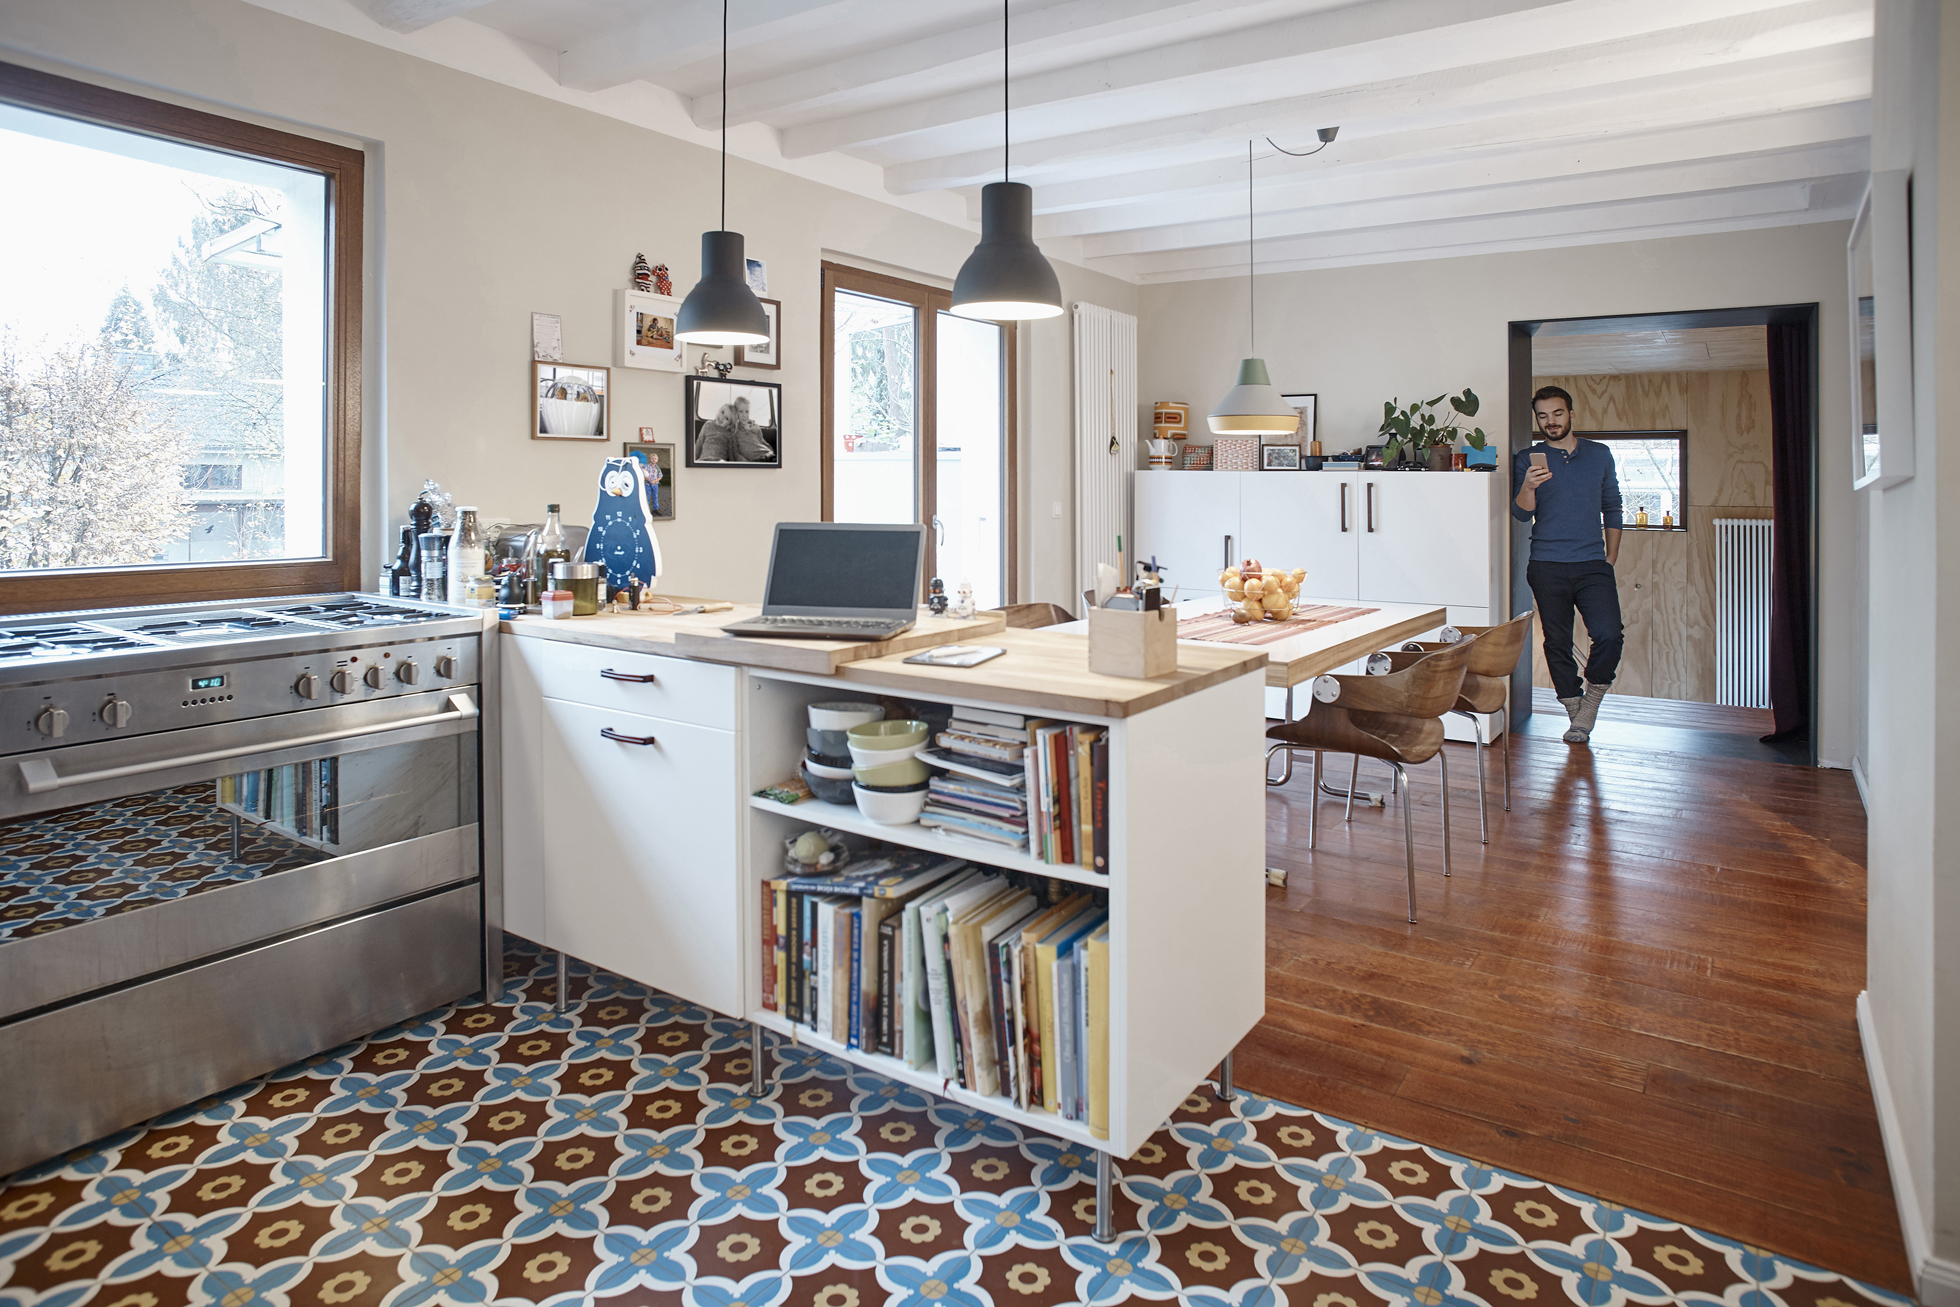 Renovated kitchen with colorful tile floor